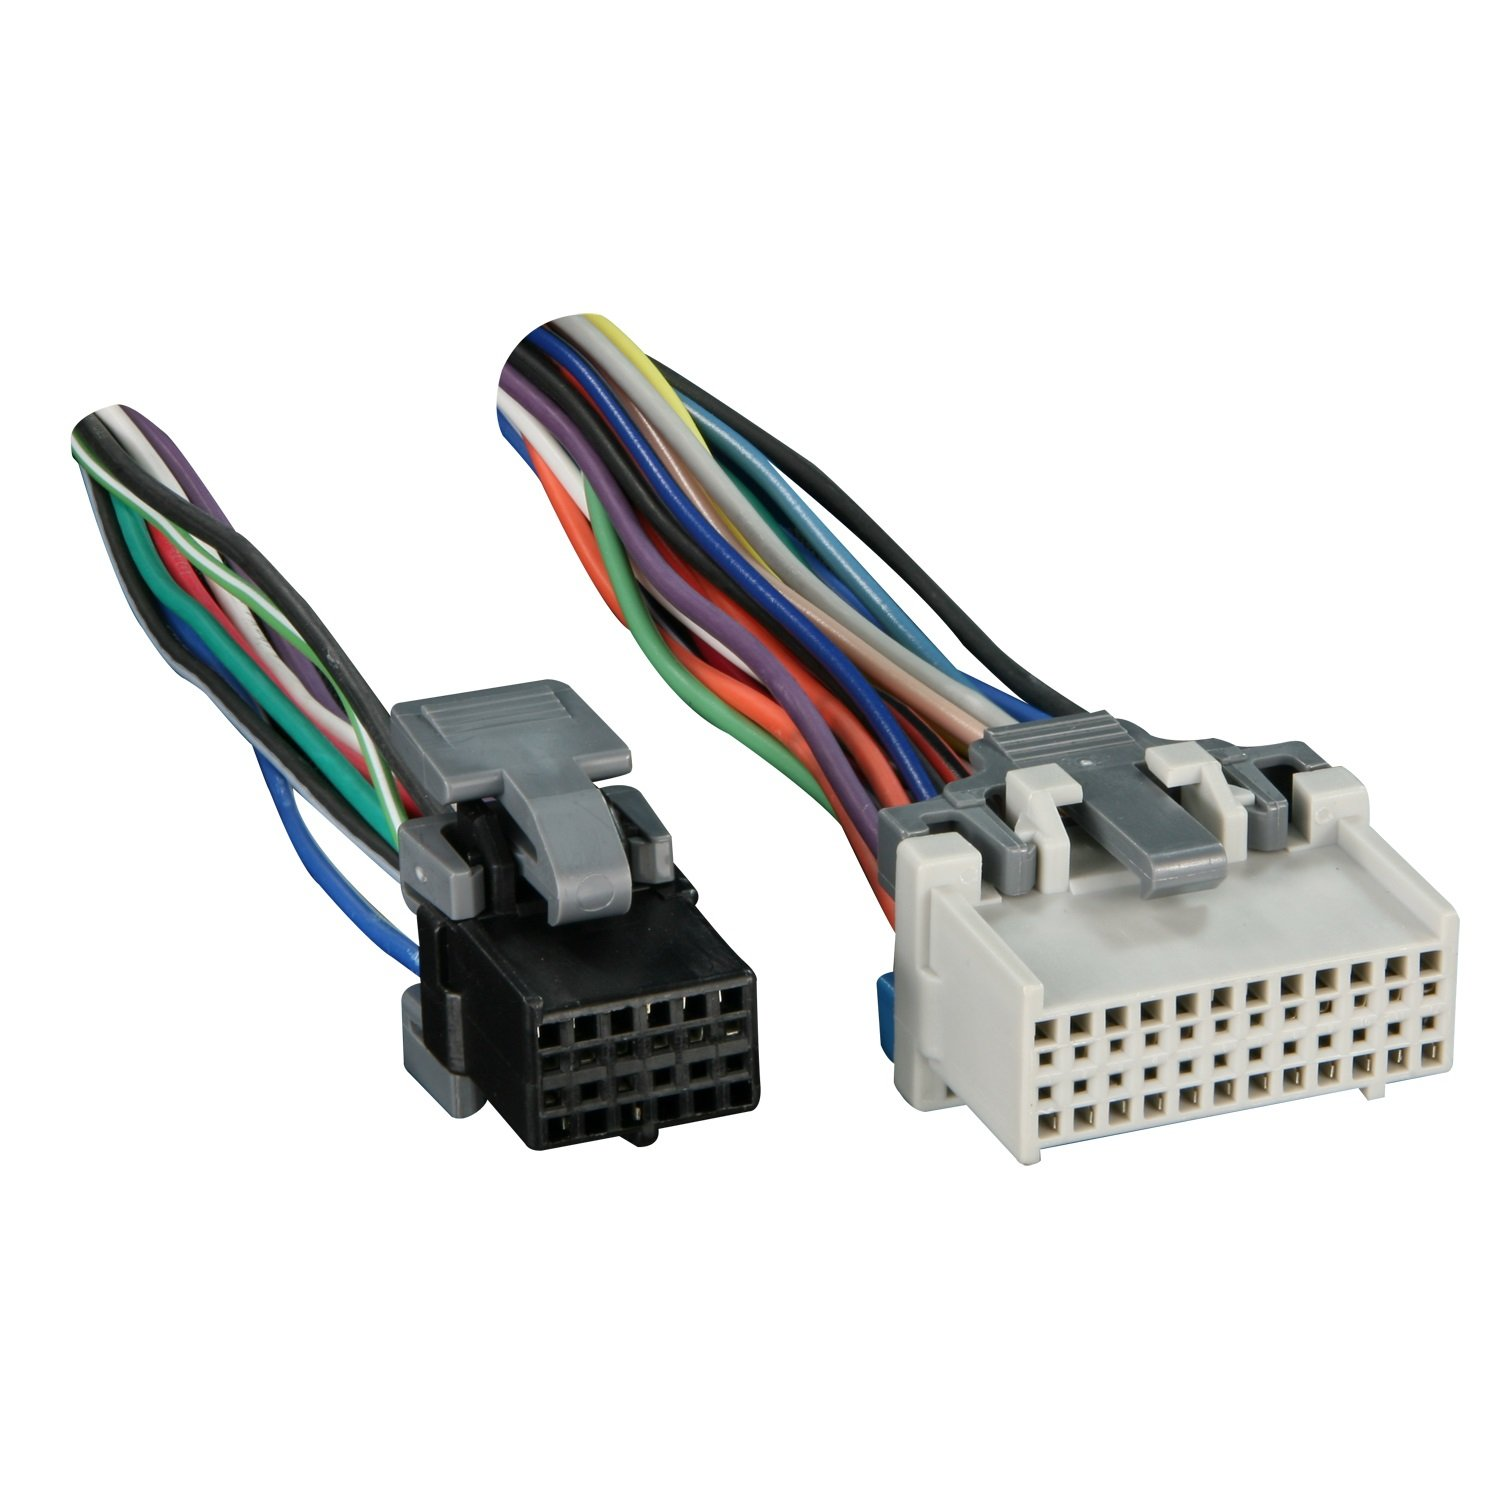 711log4bdML._SL1500_ amazon com metra turbowires 71 2003 1 wiring harness car electronics where to buy a trailer wiring harness at bayanpartner.co